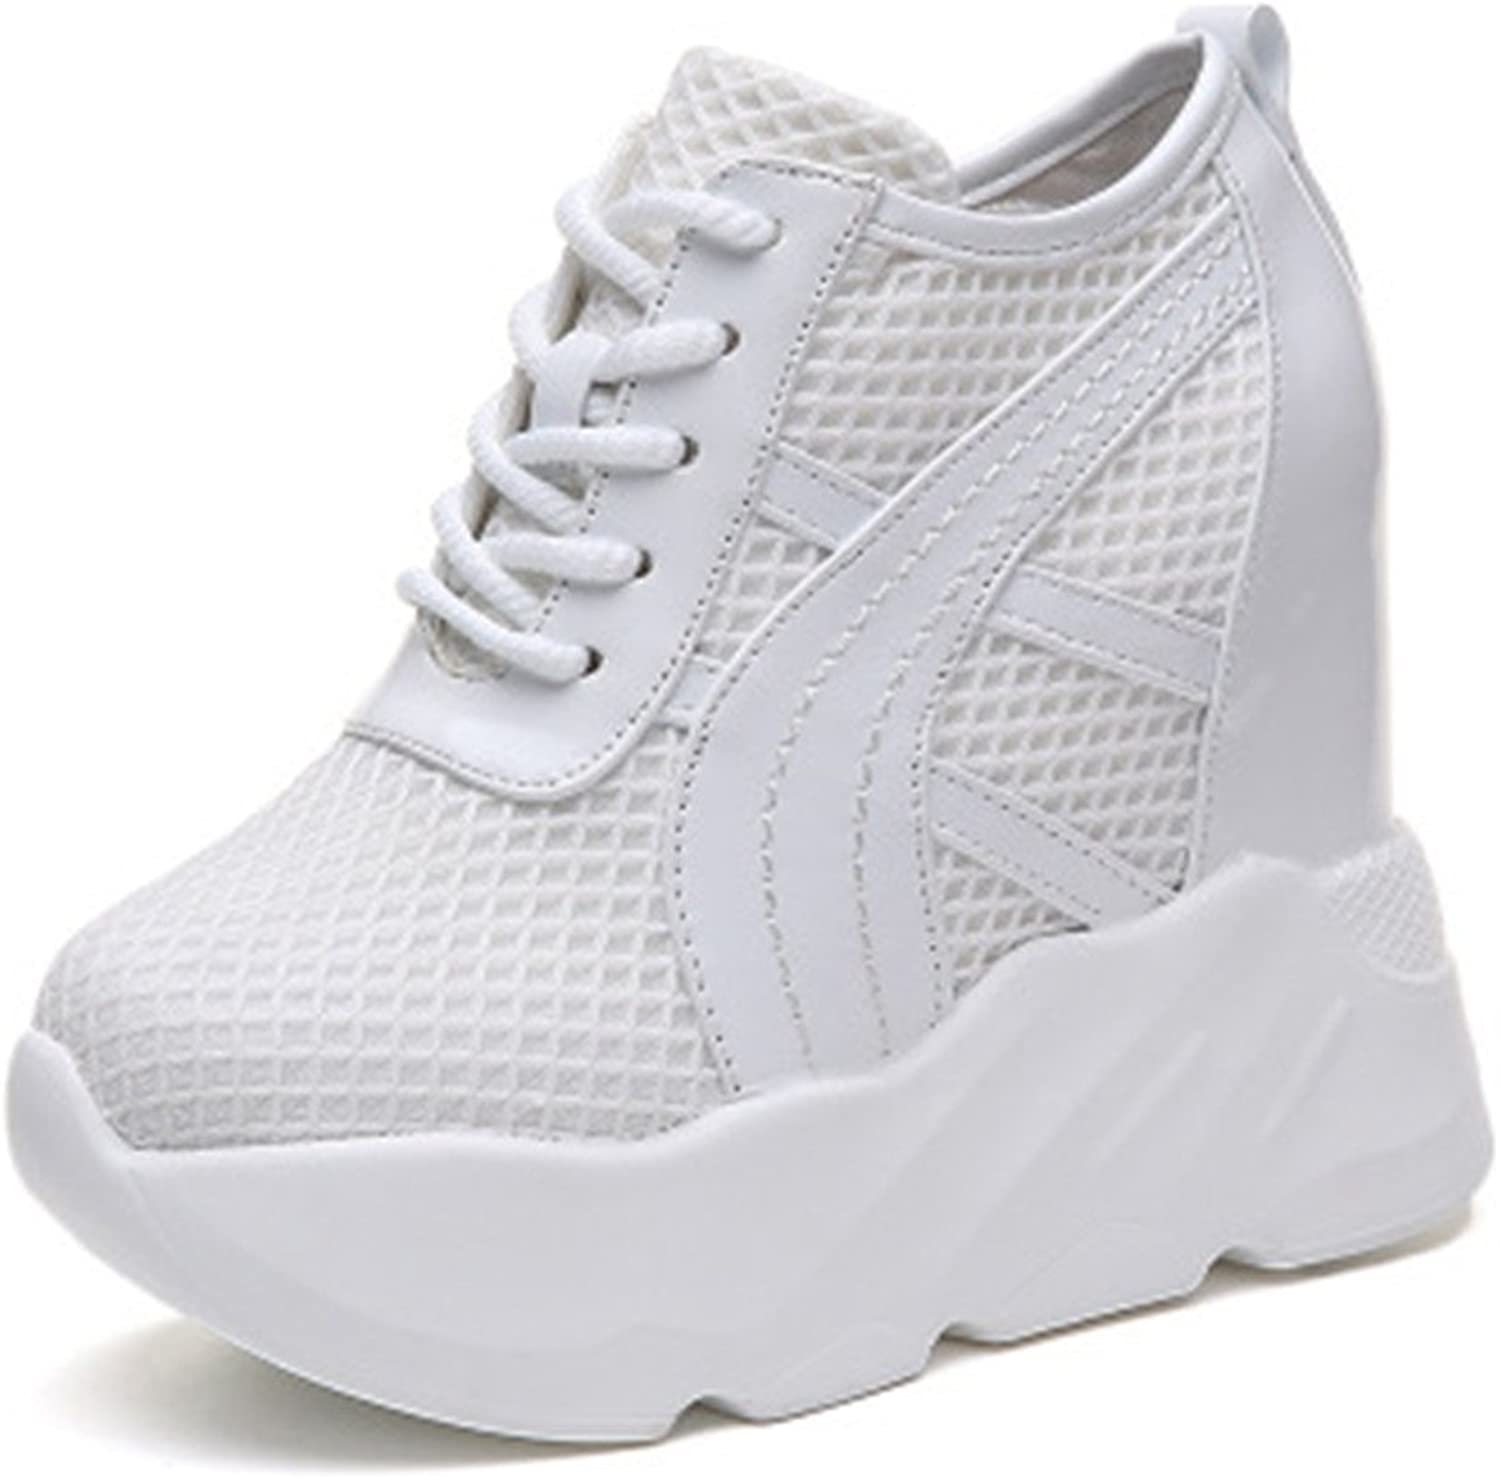 Pit4tk Womens Breathable Casual Sneakers Platform Increasing Height Comfort Loafers shoes